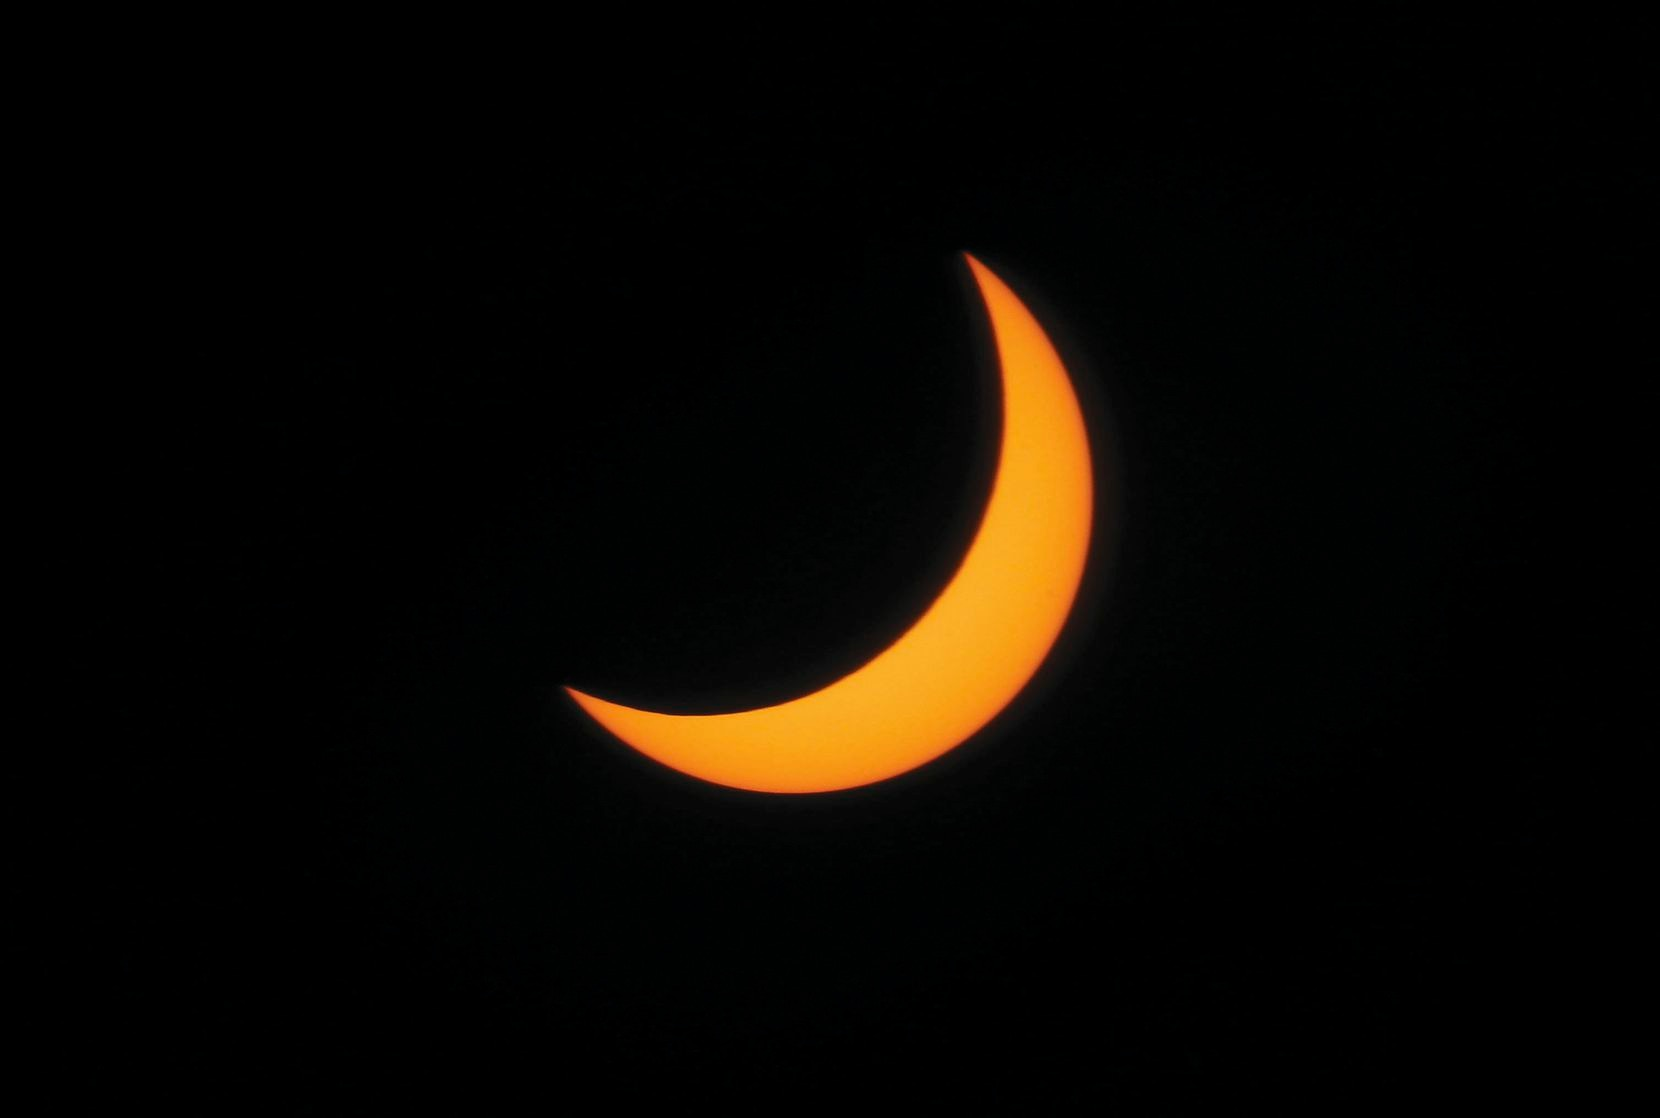 The moon passes in front of the sun at 1:09:51 p.m. Aug. 21, the fullest the solar eclipse could be seen from downtown Dallas.